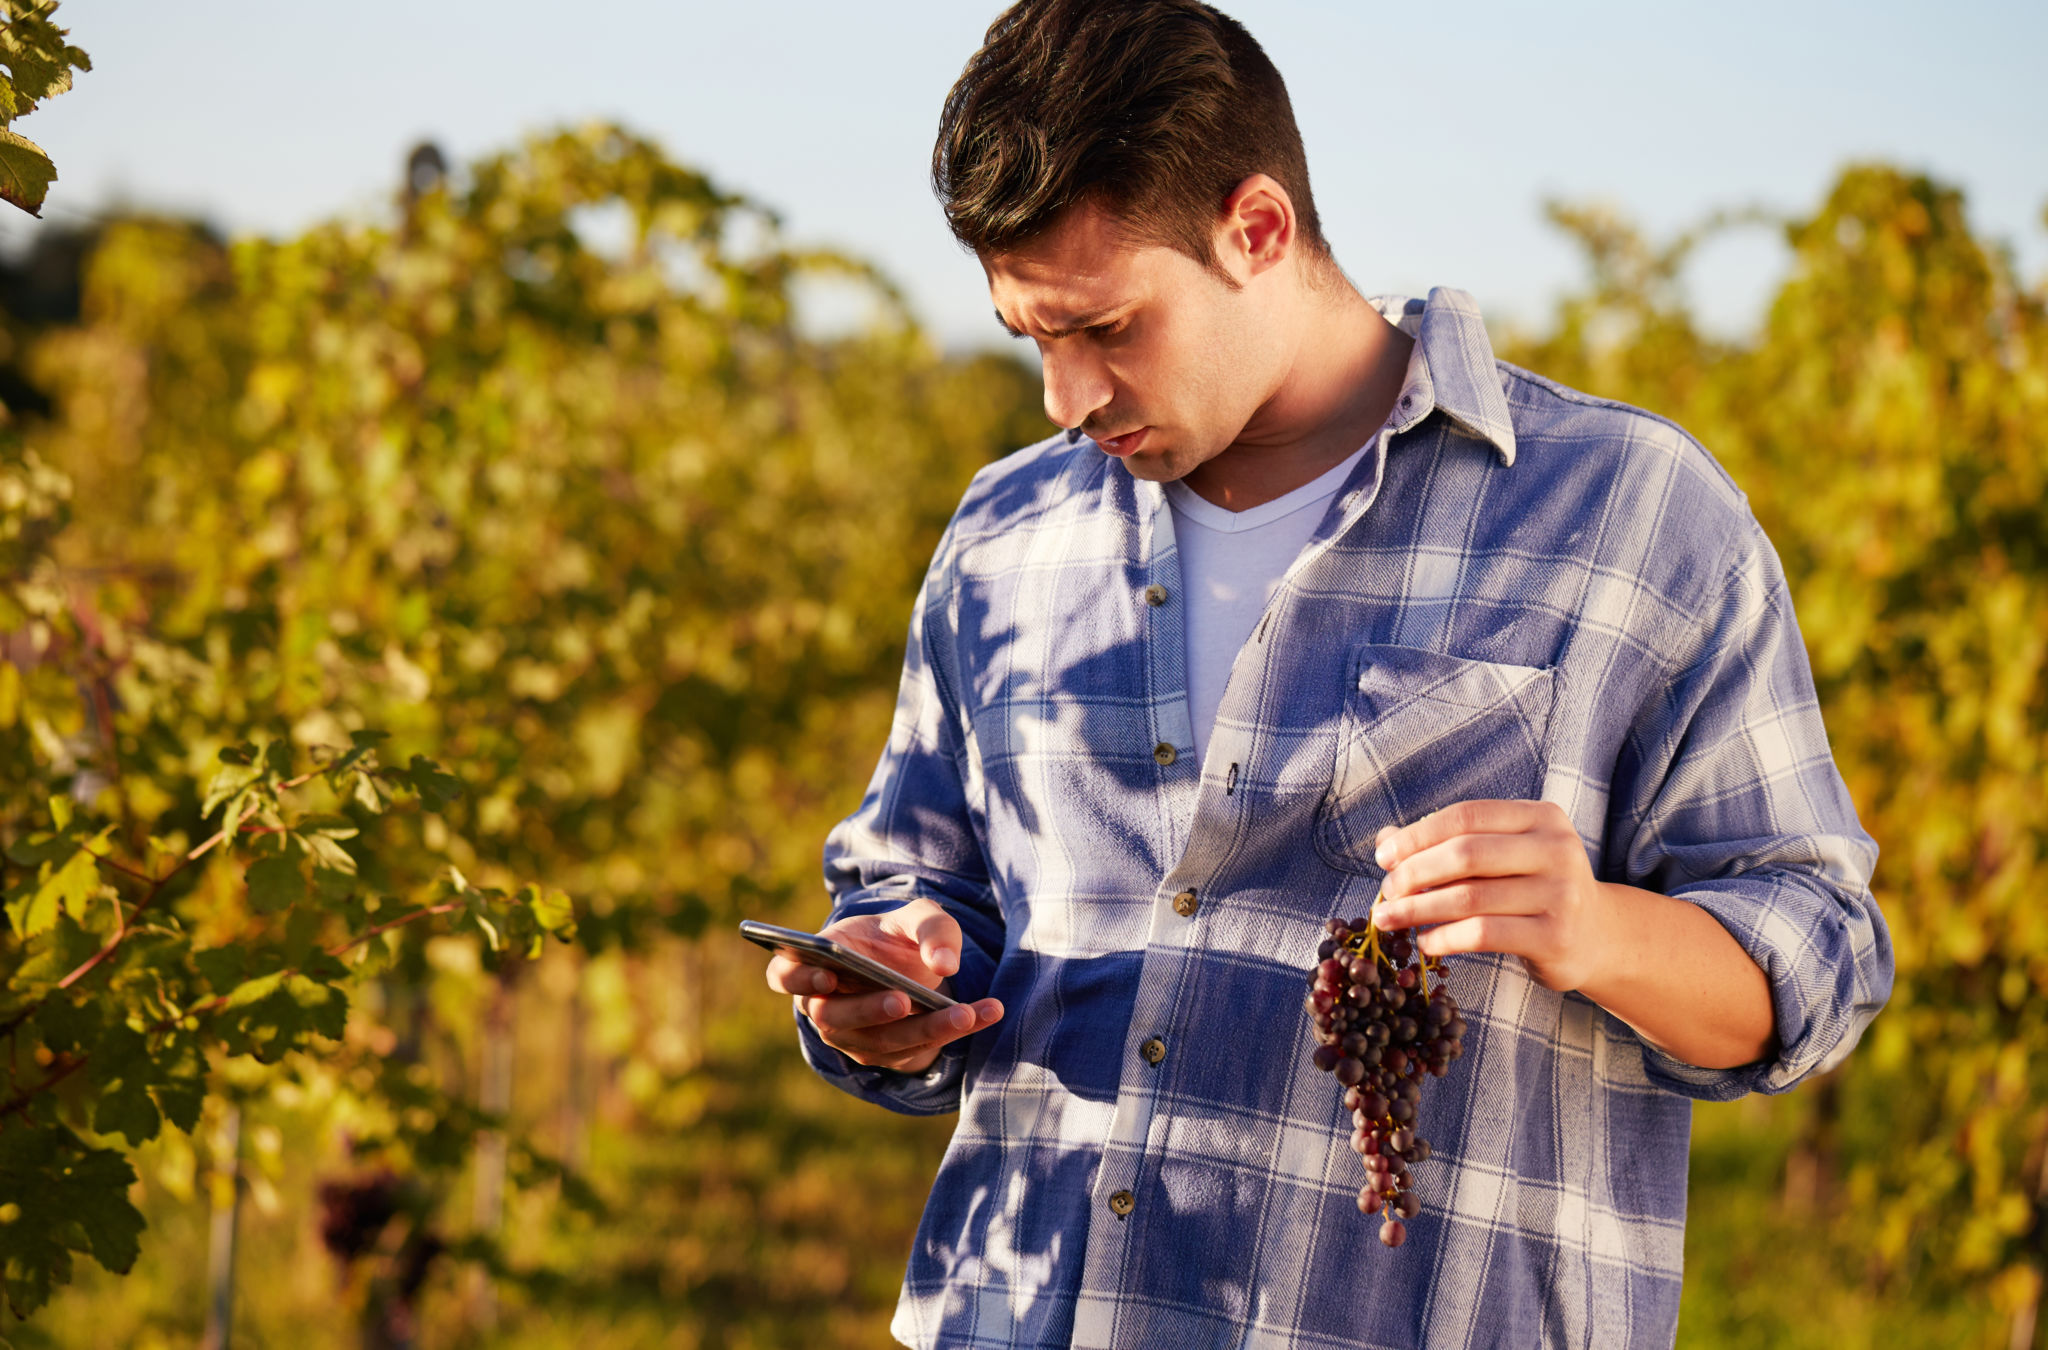 Young winemaker in vineyard picking blue grapes and talking to mobile